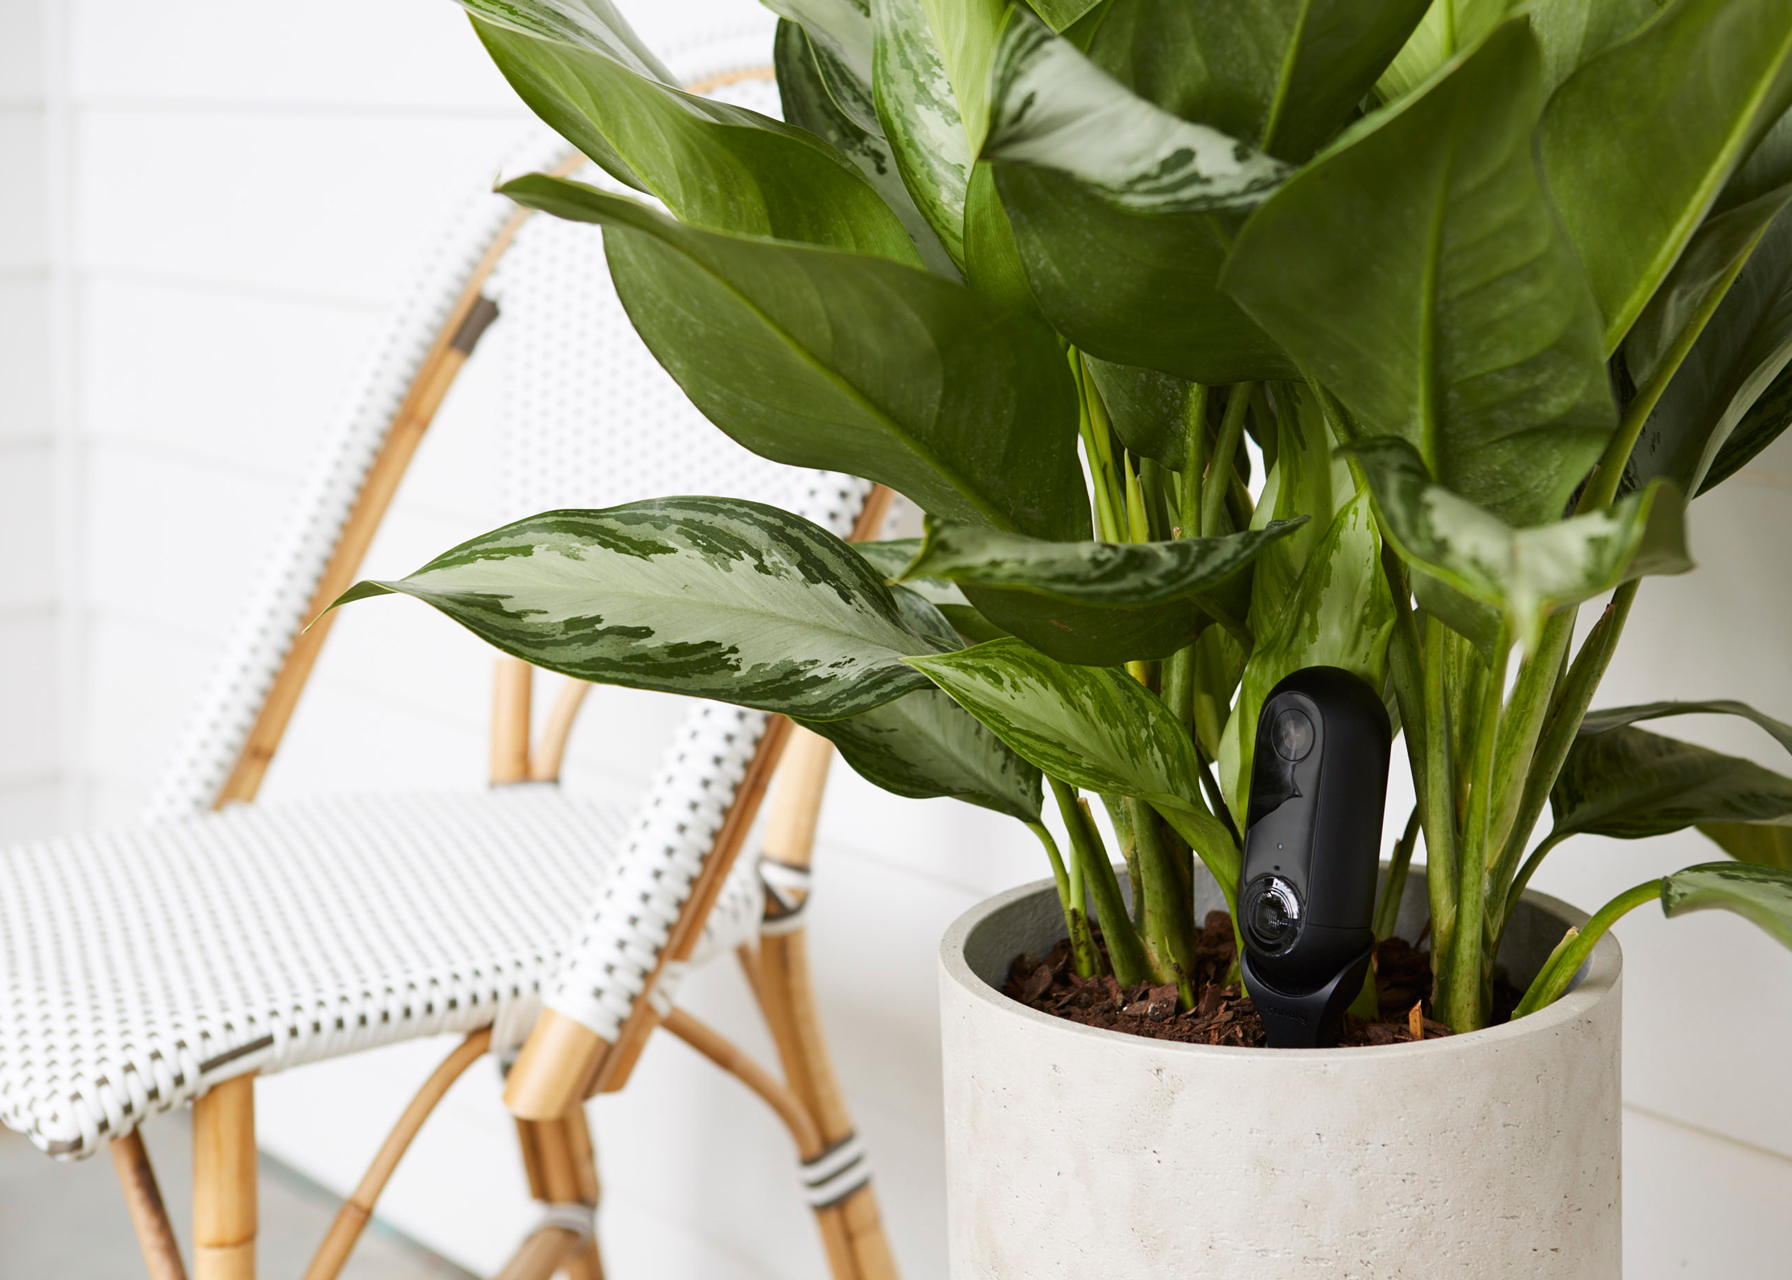 Eying Nest, Canary Launches An Outdoor Security Camera Aimed At Businesses